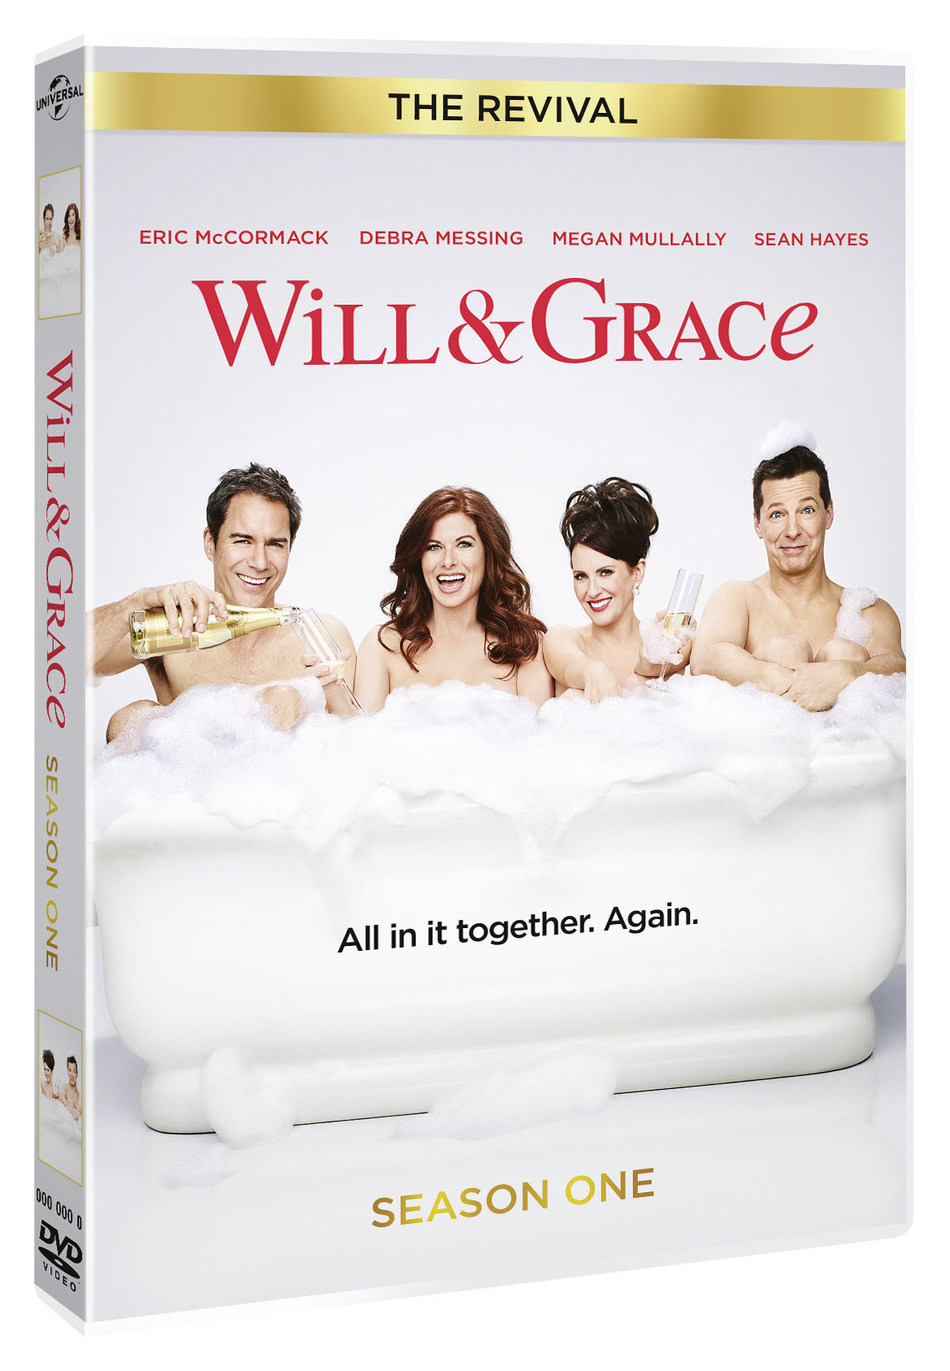 From Universal Pictures Home Entertainment: Will & Grace (The Revival): Season One